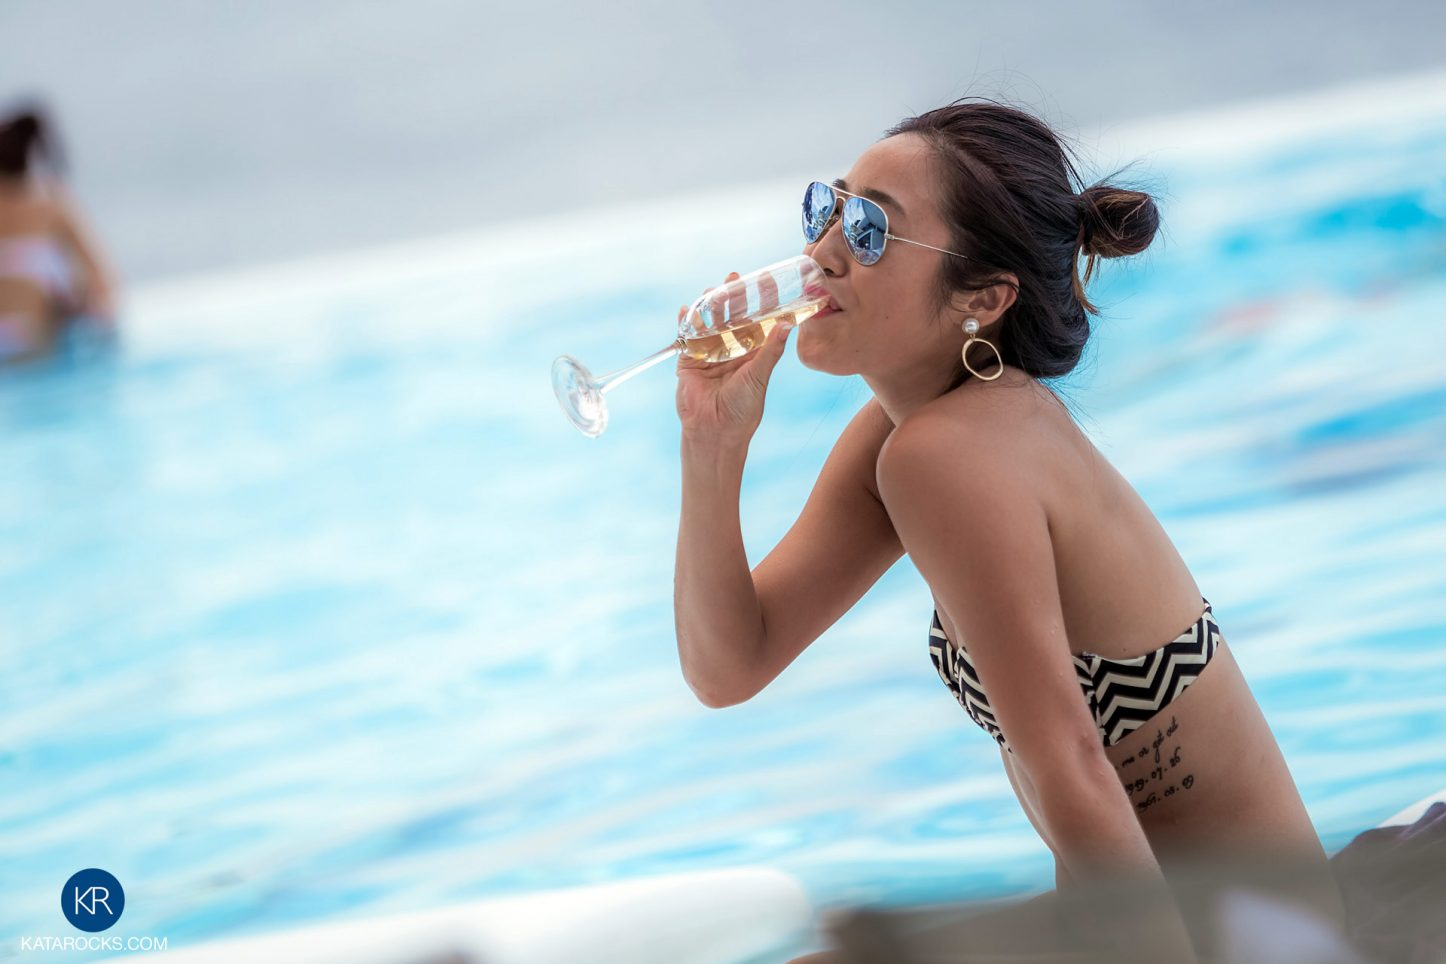 Festive season 2018 - Louis Roederer Champagne 